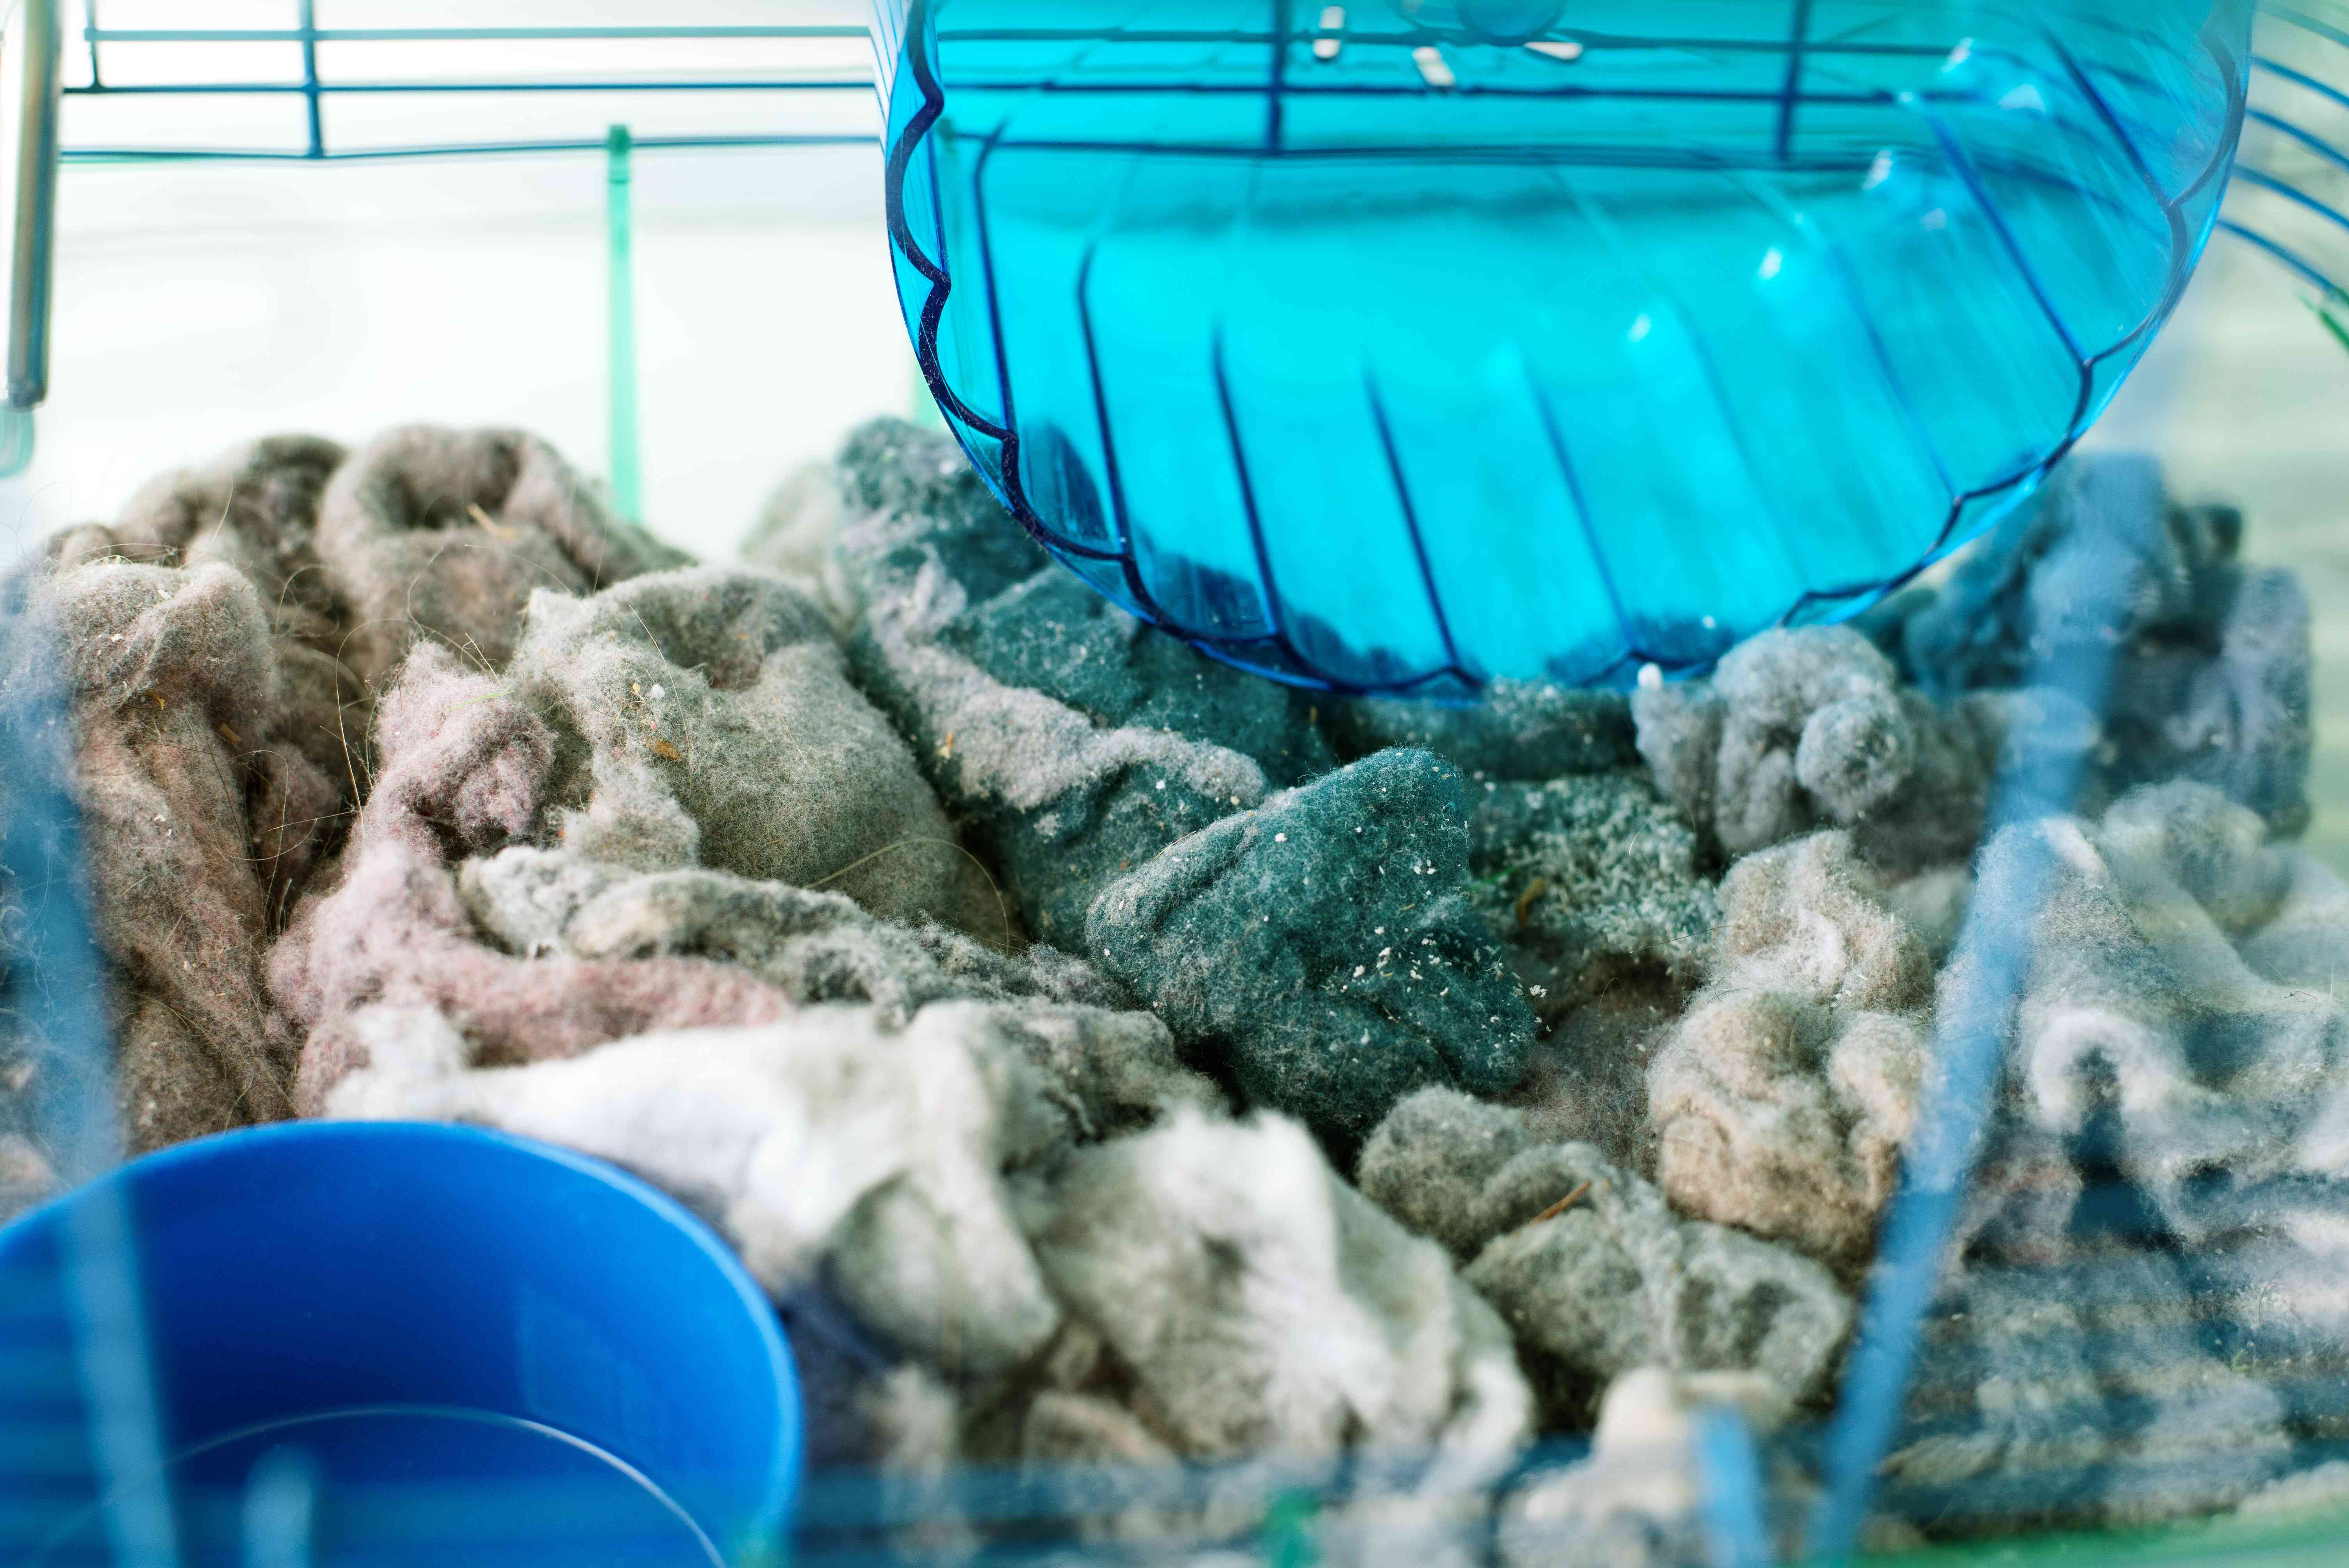 Dryer lint added to bottom of hamster cage as pet bedding